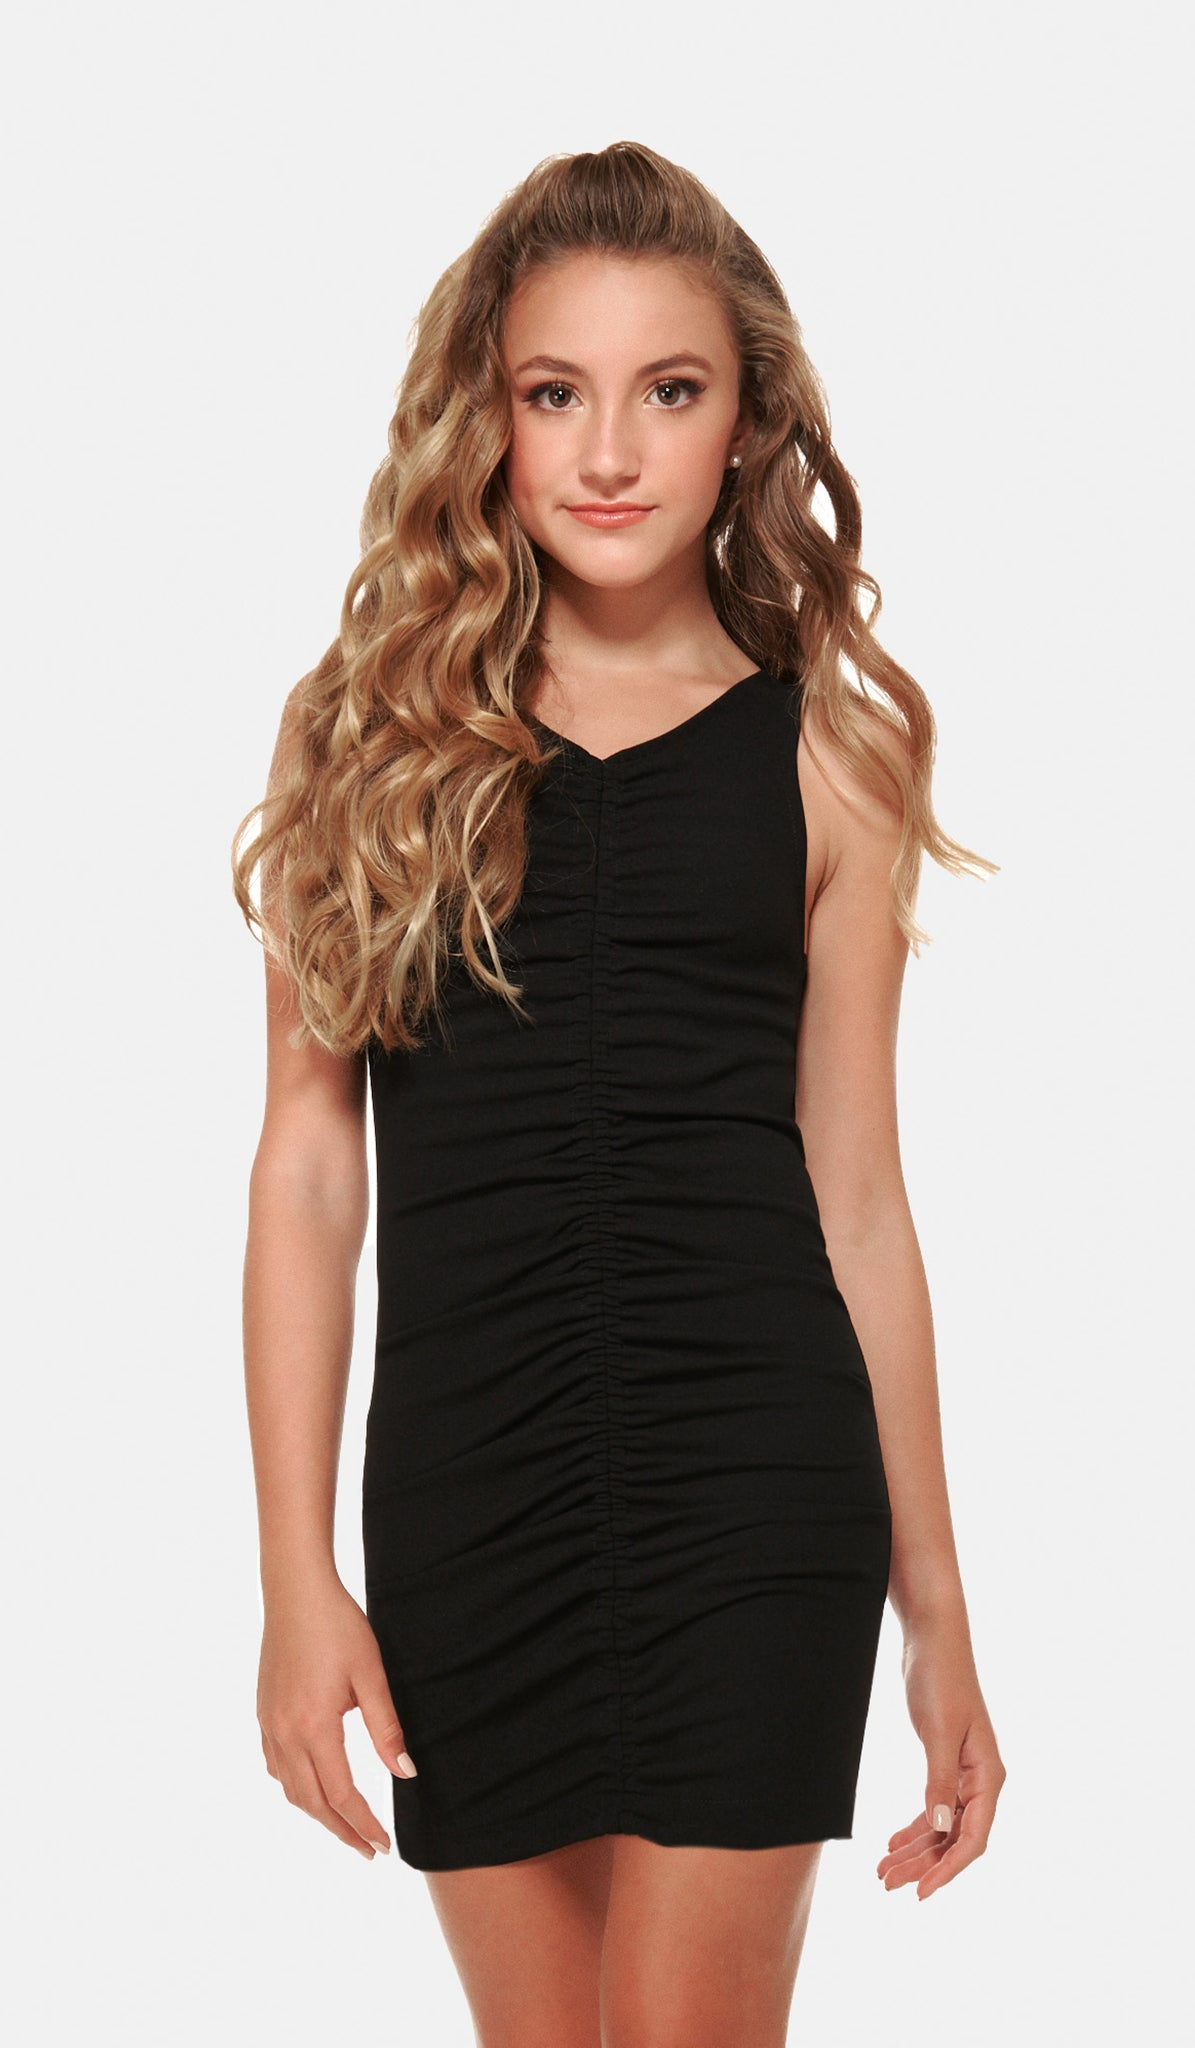 The Sally Miller Deb Dress Juniors - Black stretch crepe georgette body con dress with center front rouching